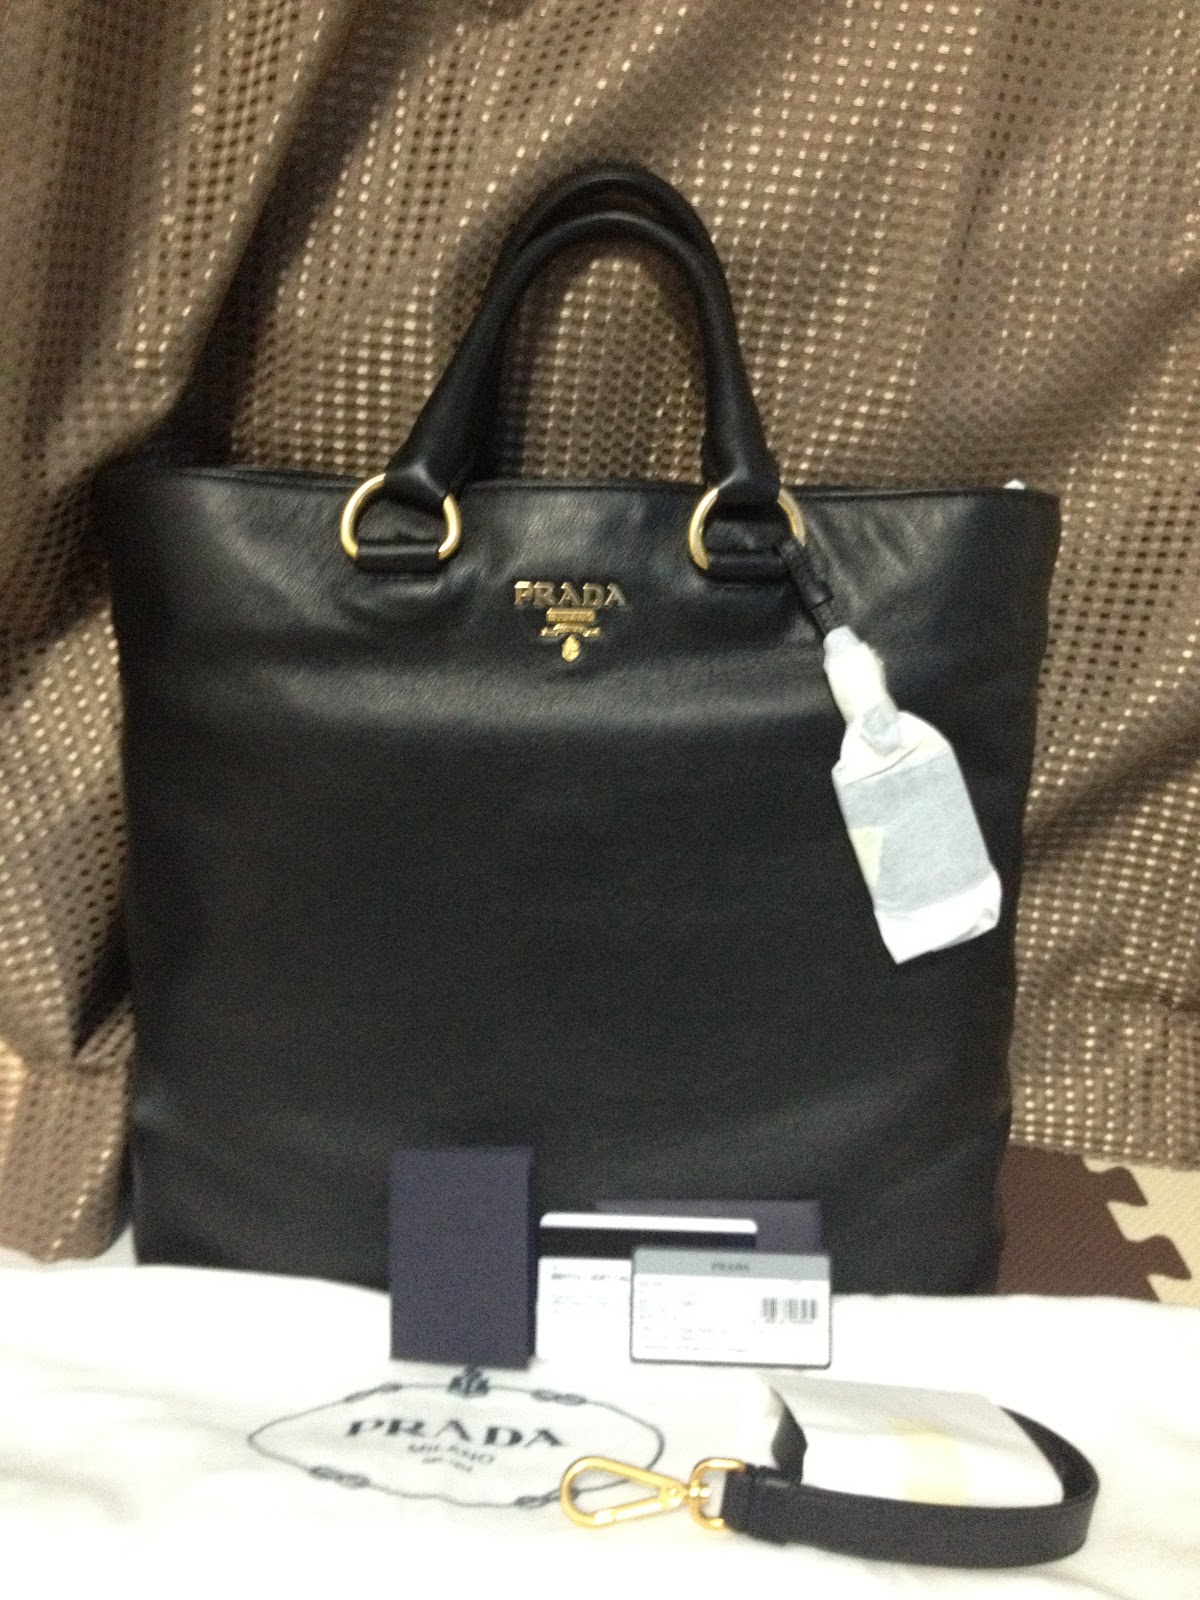 fafc31656ddc ... wholesale sold authentic prada soft calf leather tote bag in nero  colour c26a0 31d3a ...